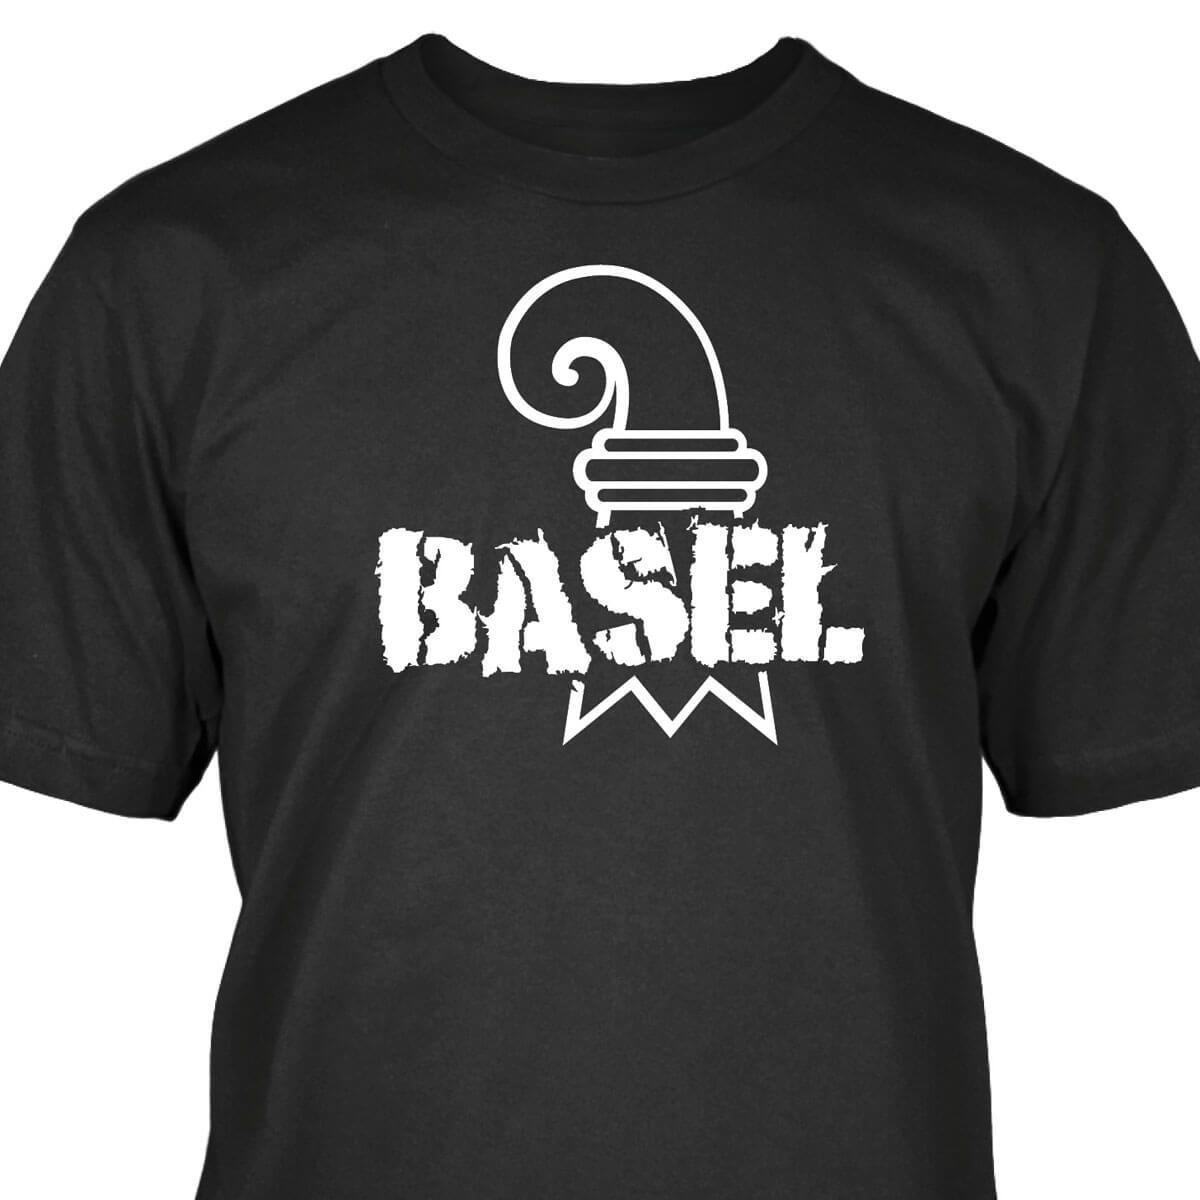 2019 New Hot Summer Sale T-shirt dos homens T-shirt Basel gratuito Oversized Pictures Unisex Mens camiseta Plus Size 5XL Top Sales Online